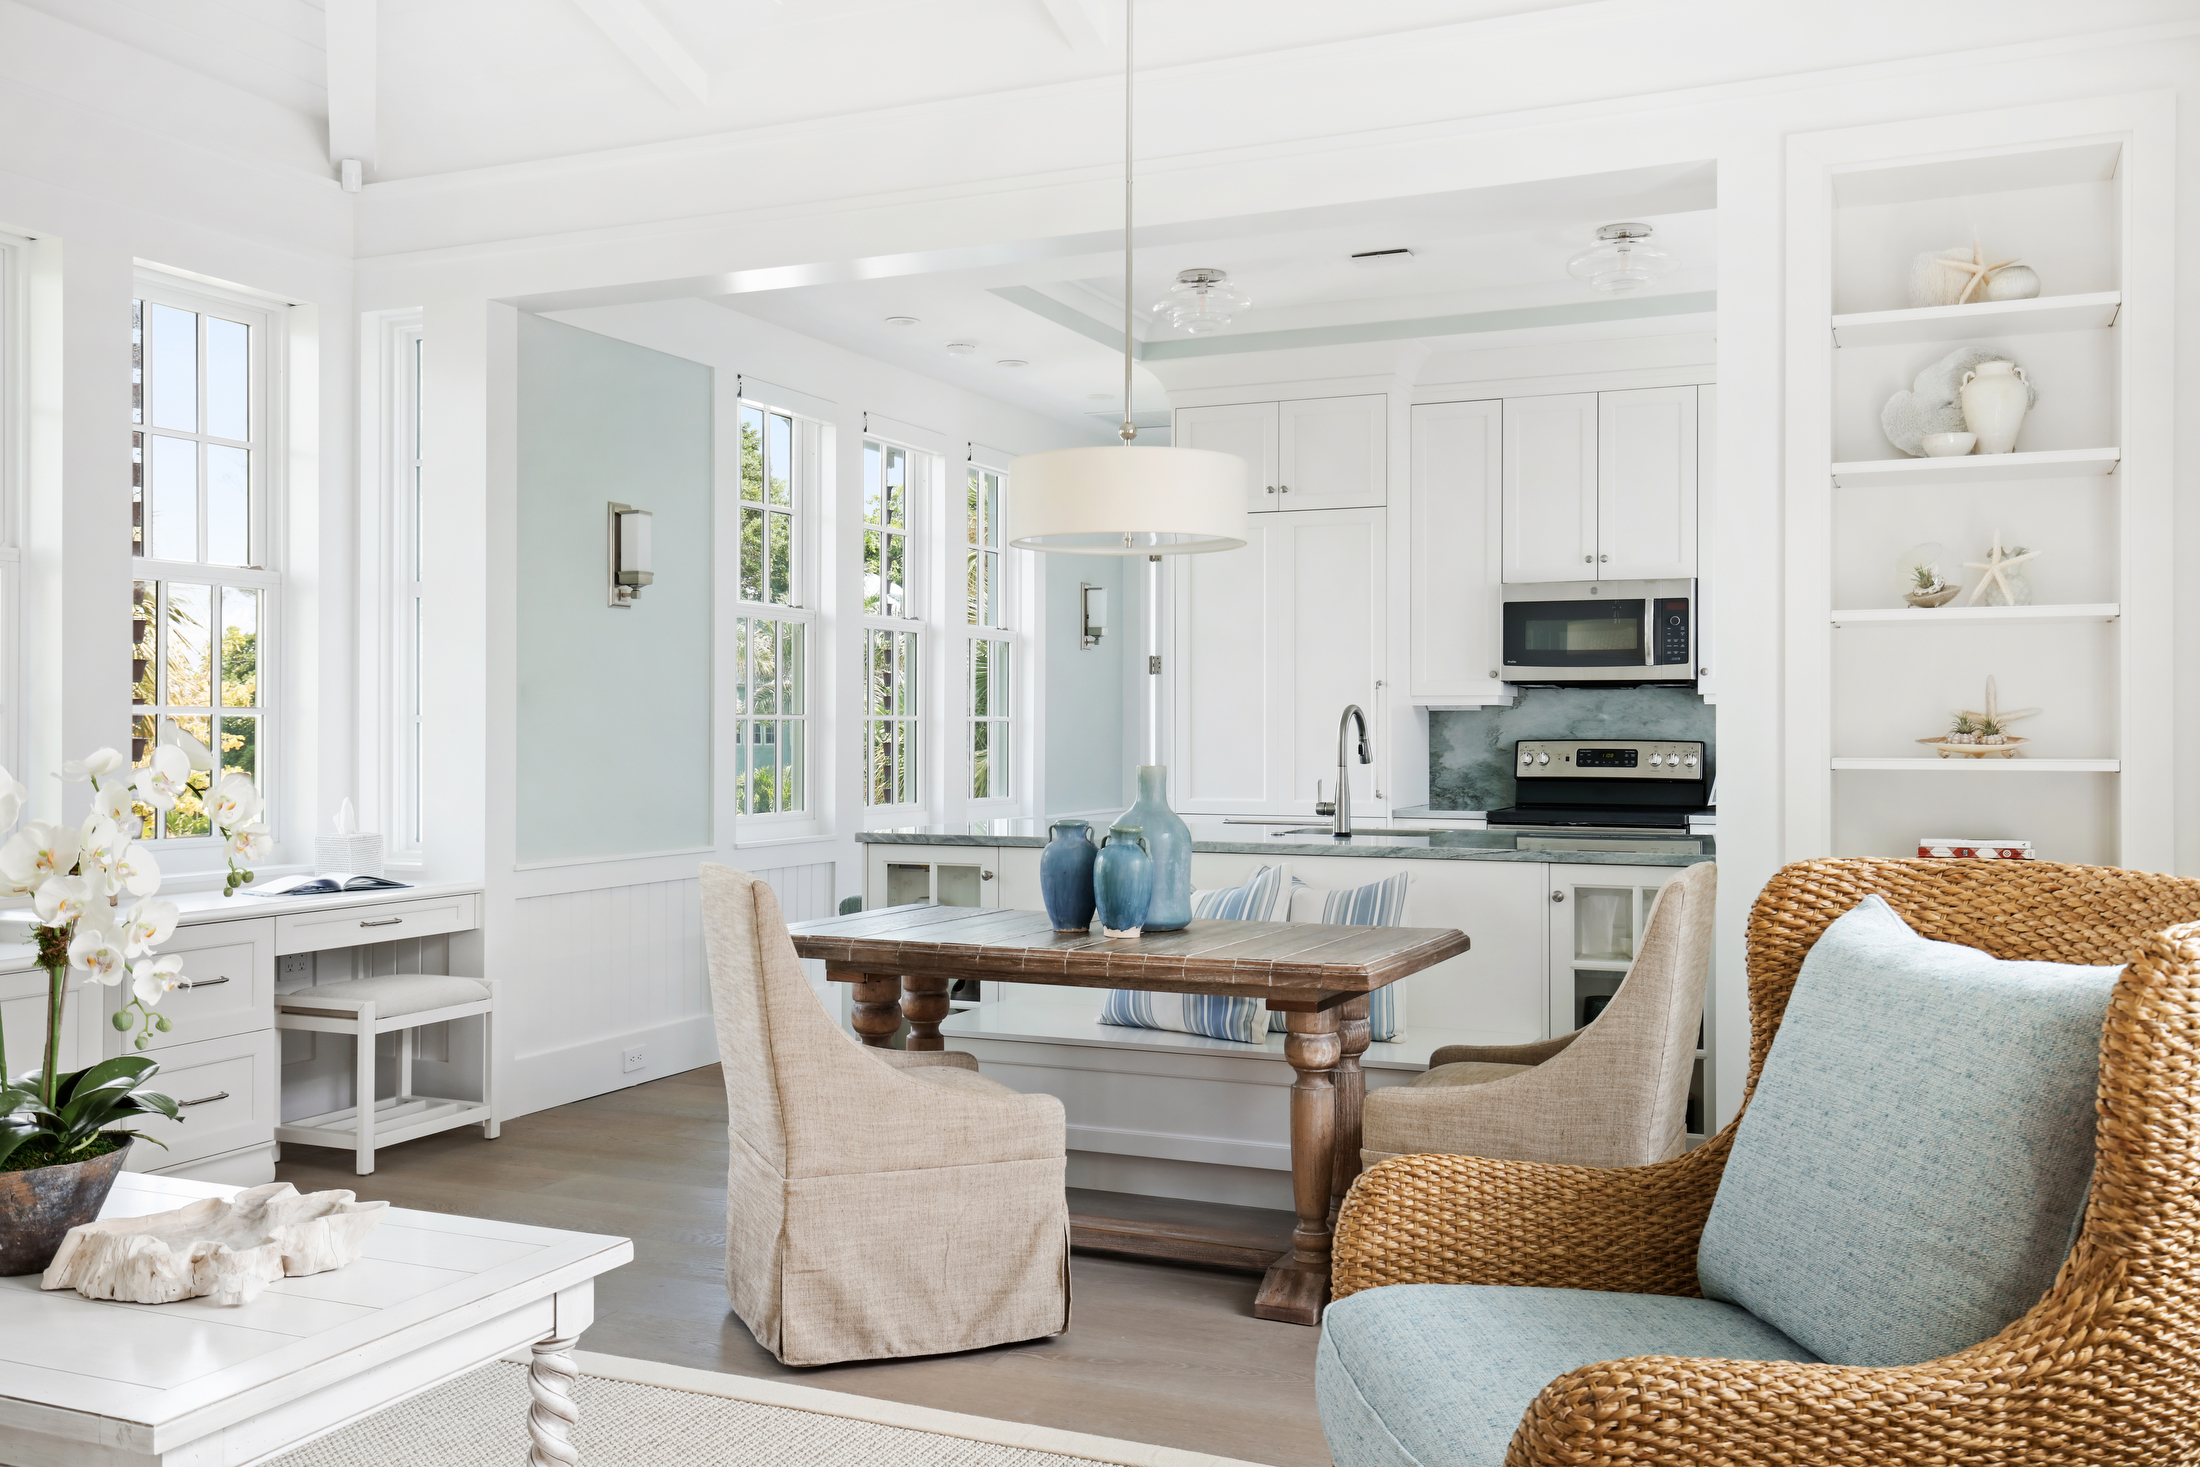 Open kitchen and living room with coastal accents